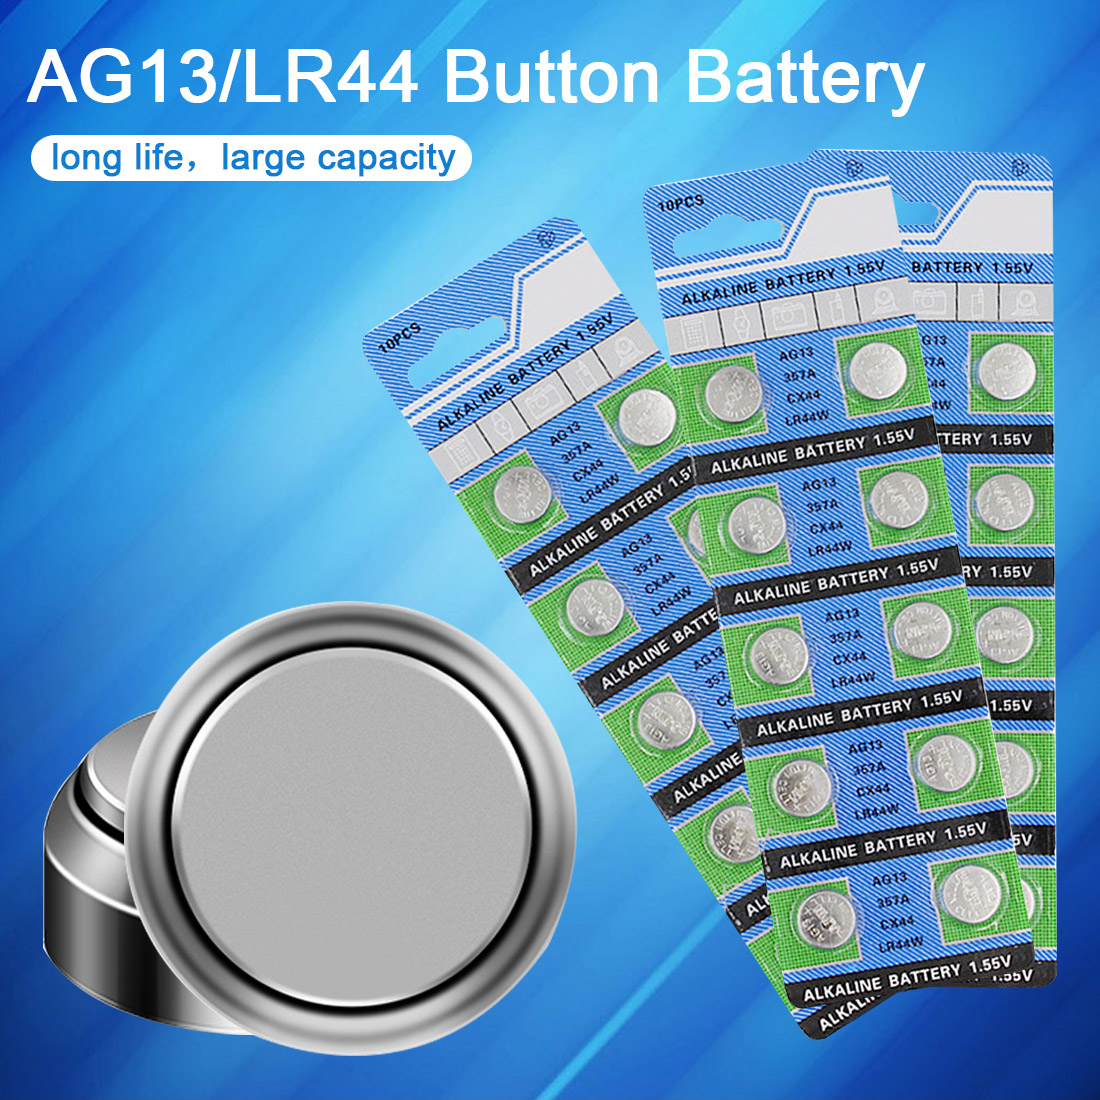 10PCS AG13 Watch Battery 1.55V 357A CX44 LR44W Coin Cell Alkaline Batteries for Toy Calculator Laser Pointer Clock Watch Cameras